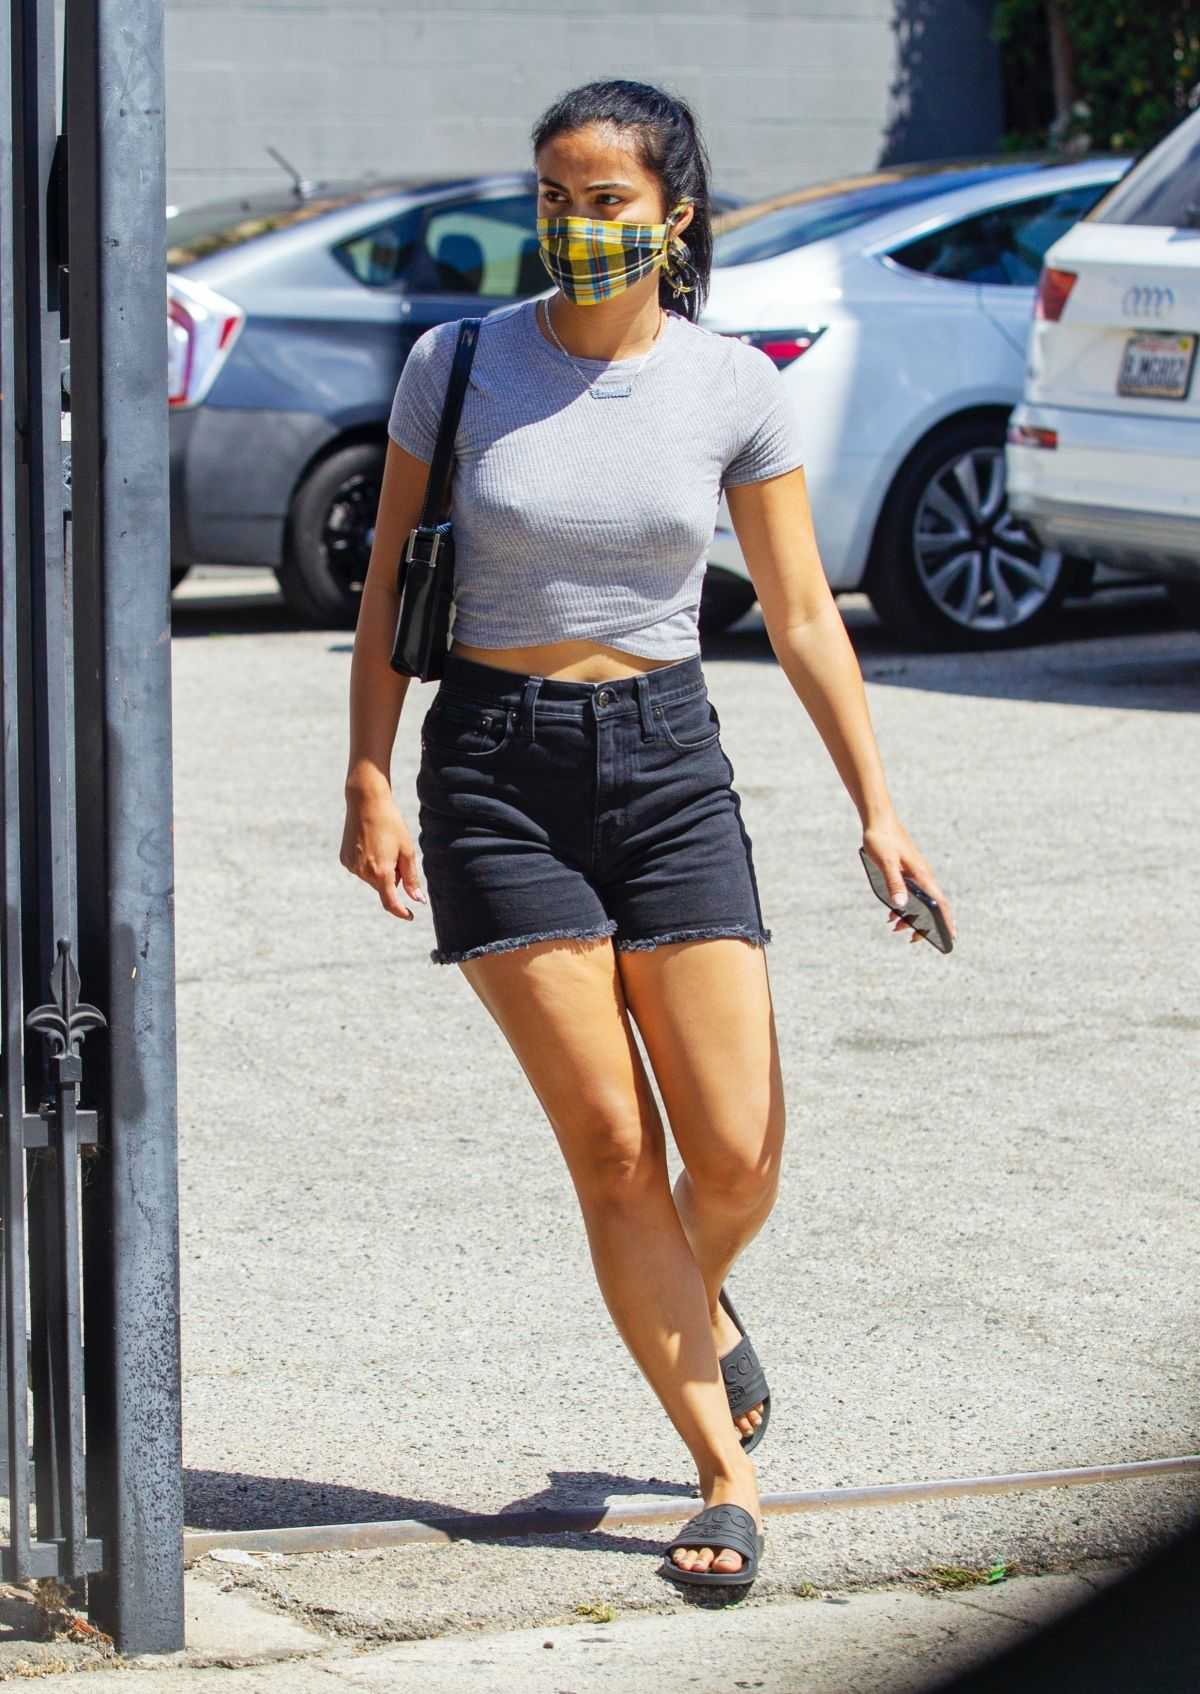 Camila Mendes Heading To Medical Clinic West Hollywood